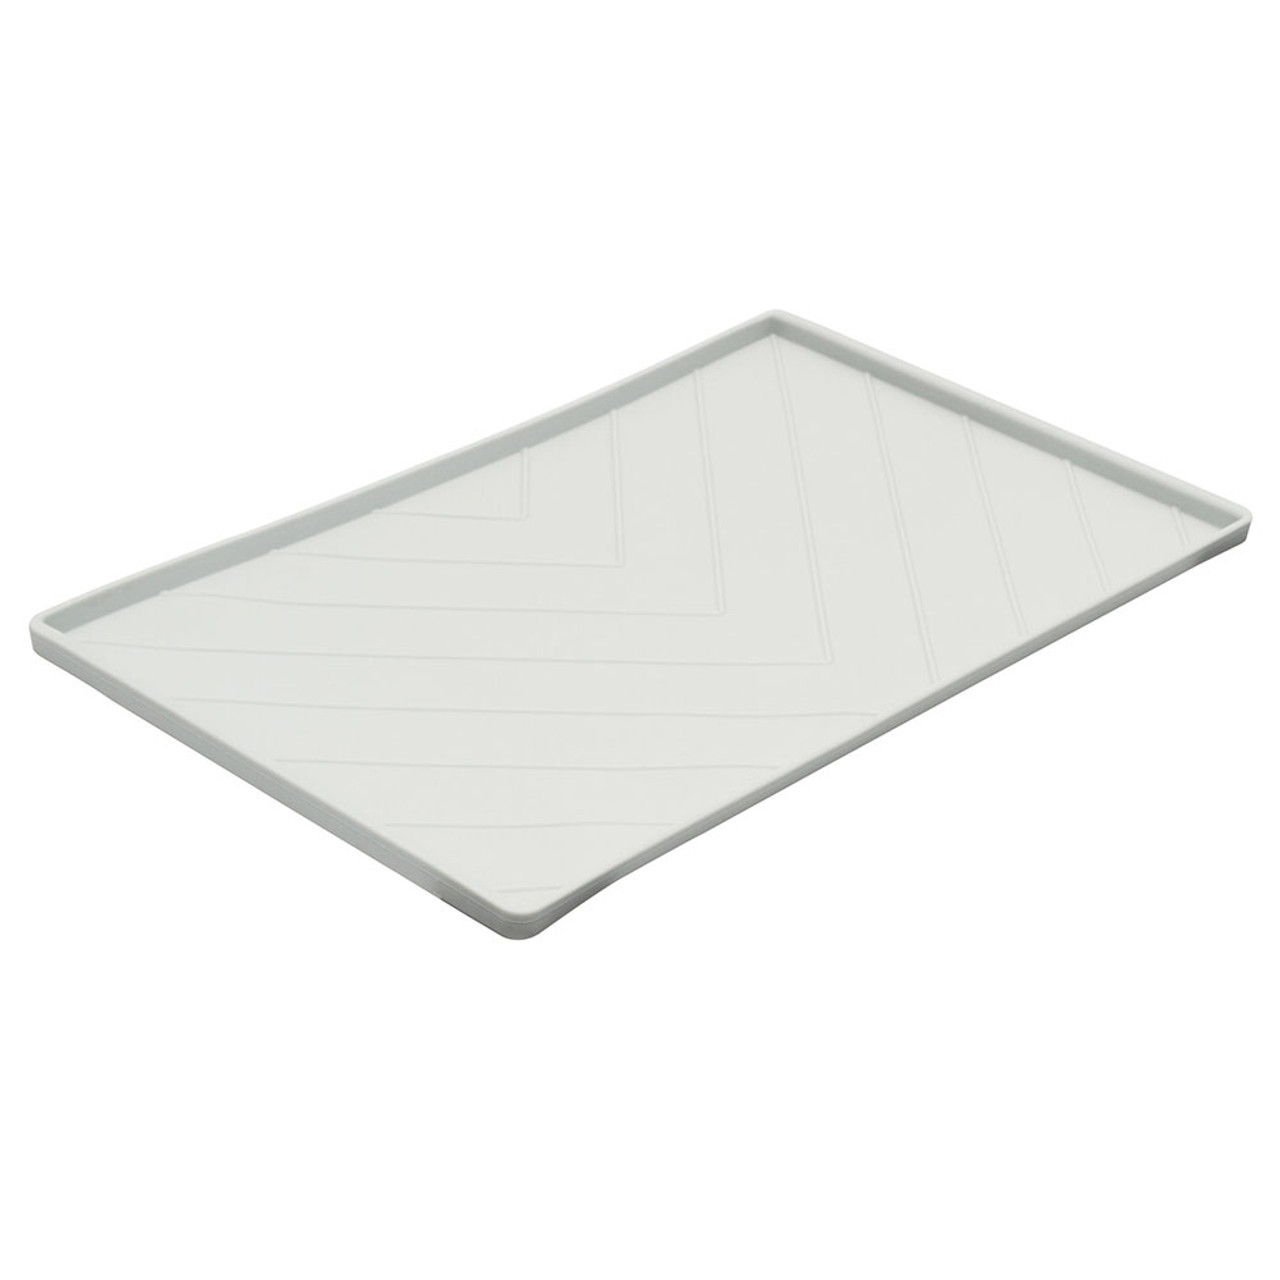 Messy Mutts Silicone Bowl Mat - Light Gray